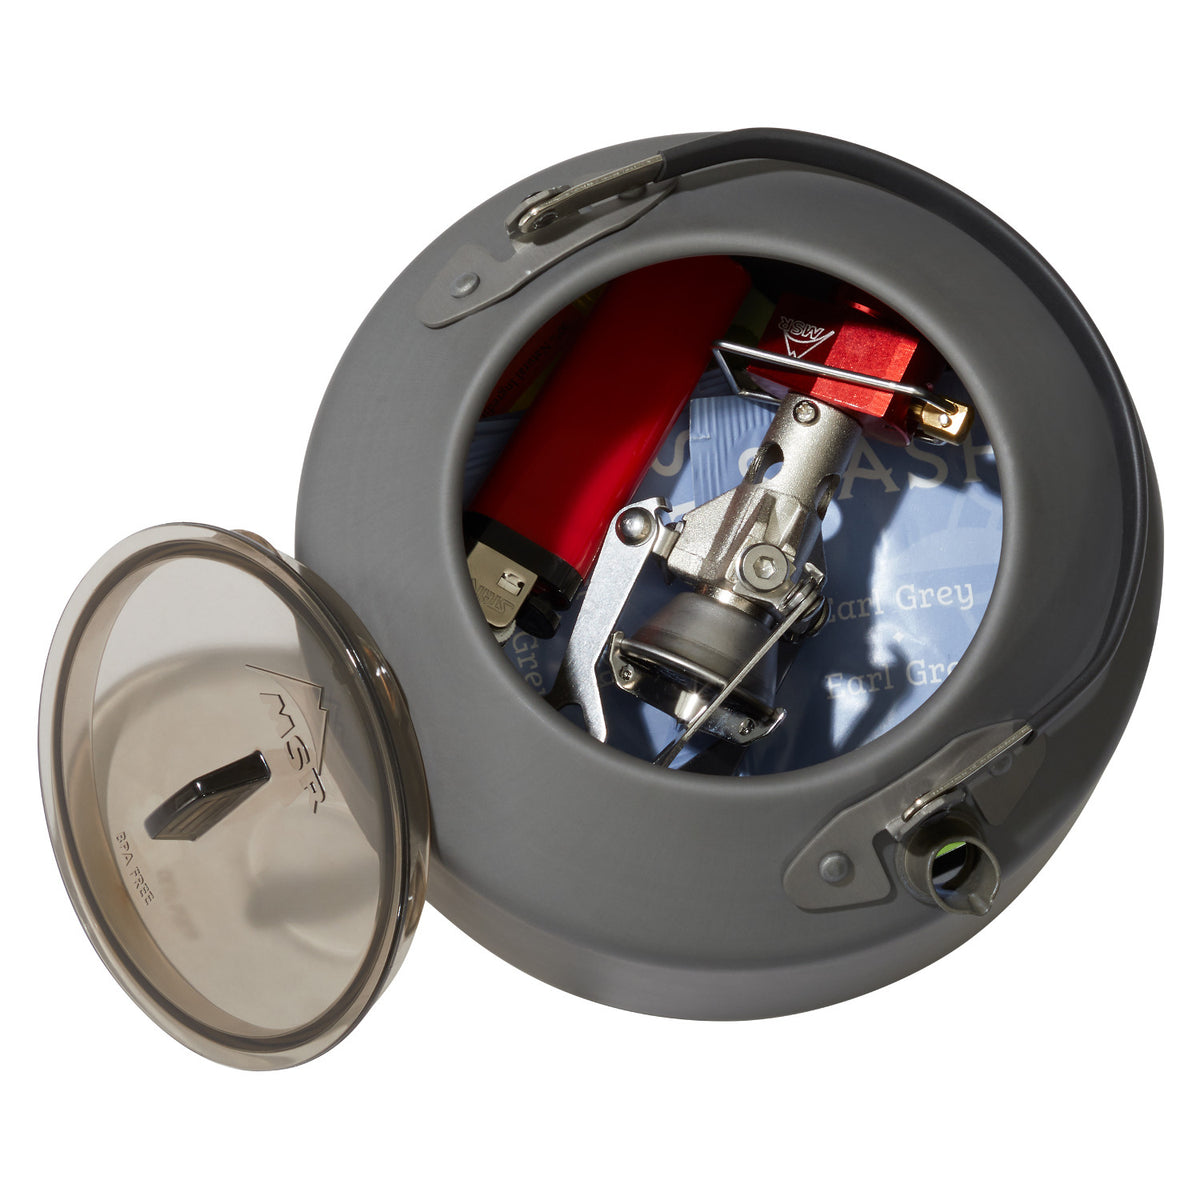 MSR Pika 1.0L Teapot, inside view showing stove storage option